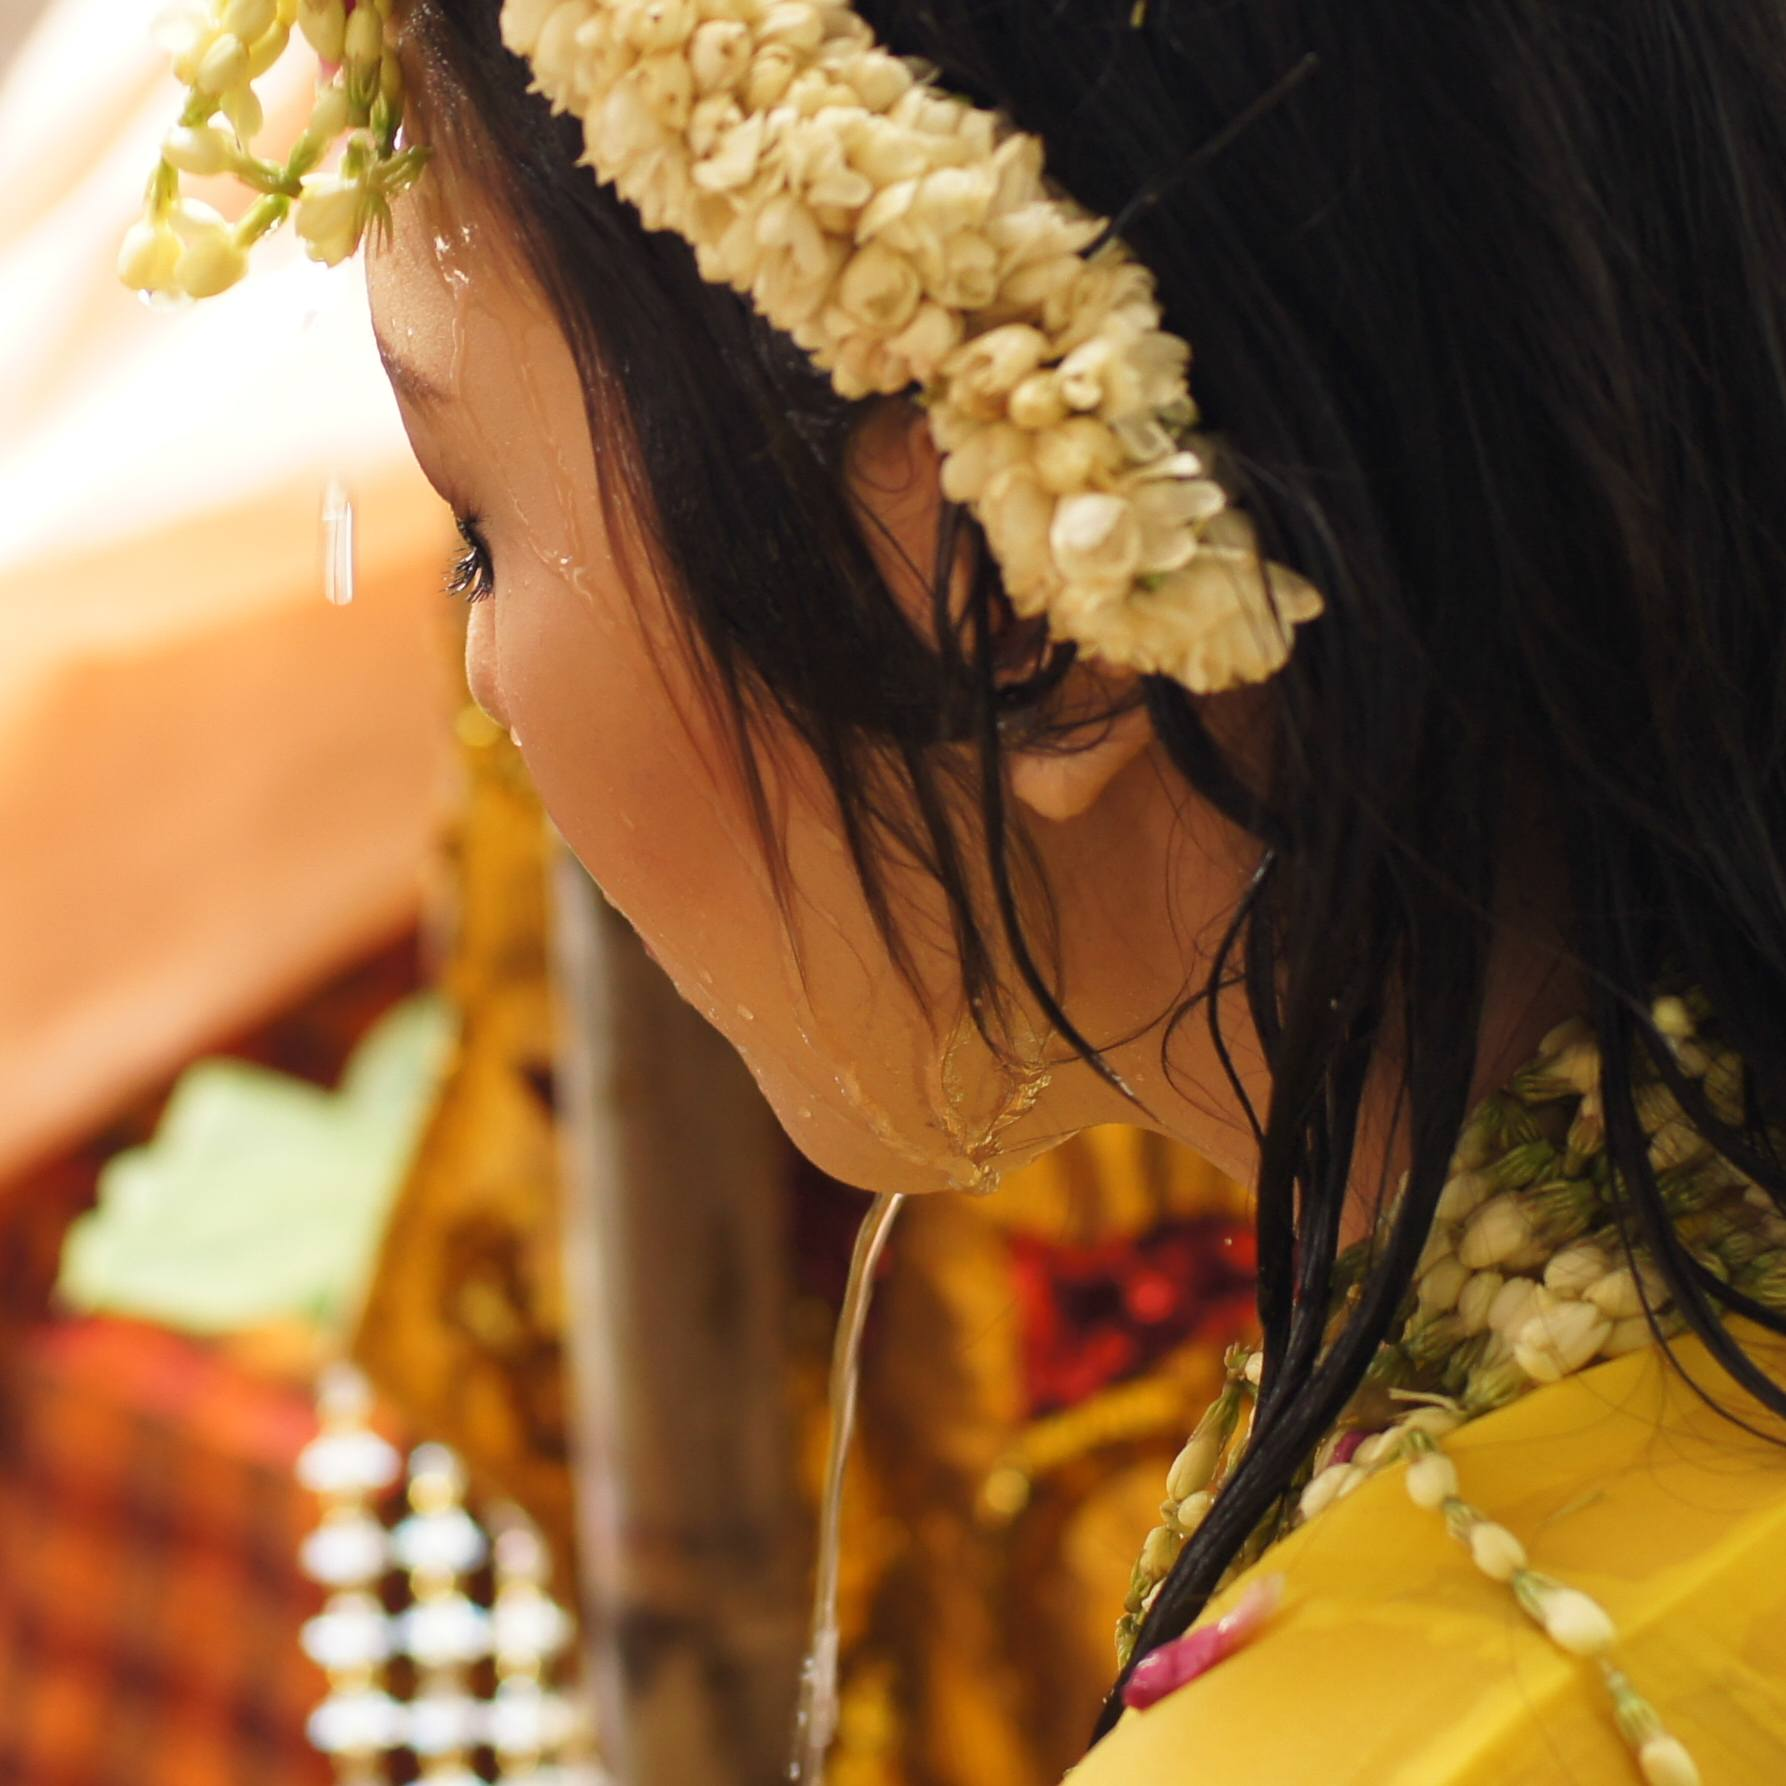 During the Mappasili, the bride-to-be is showered with holy water by close family members, cleansing her in preparedness for this new chapter in her life.